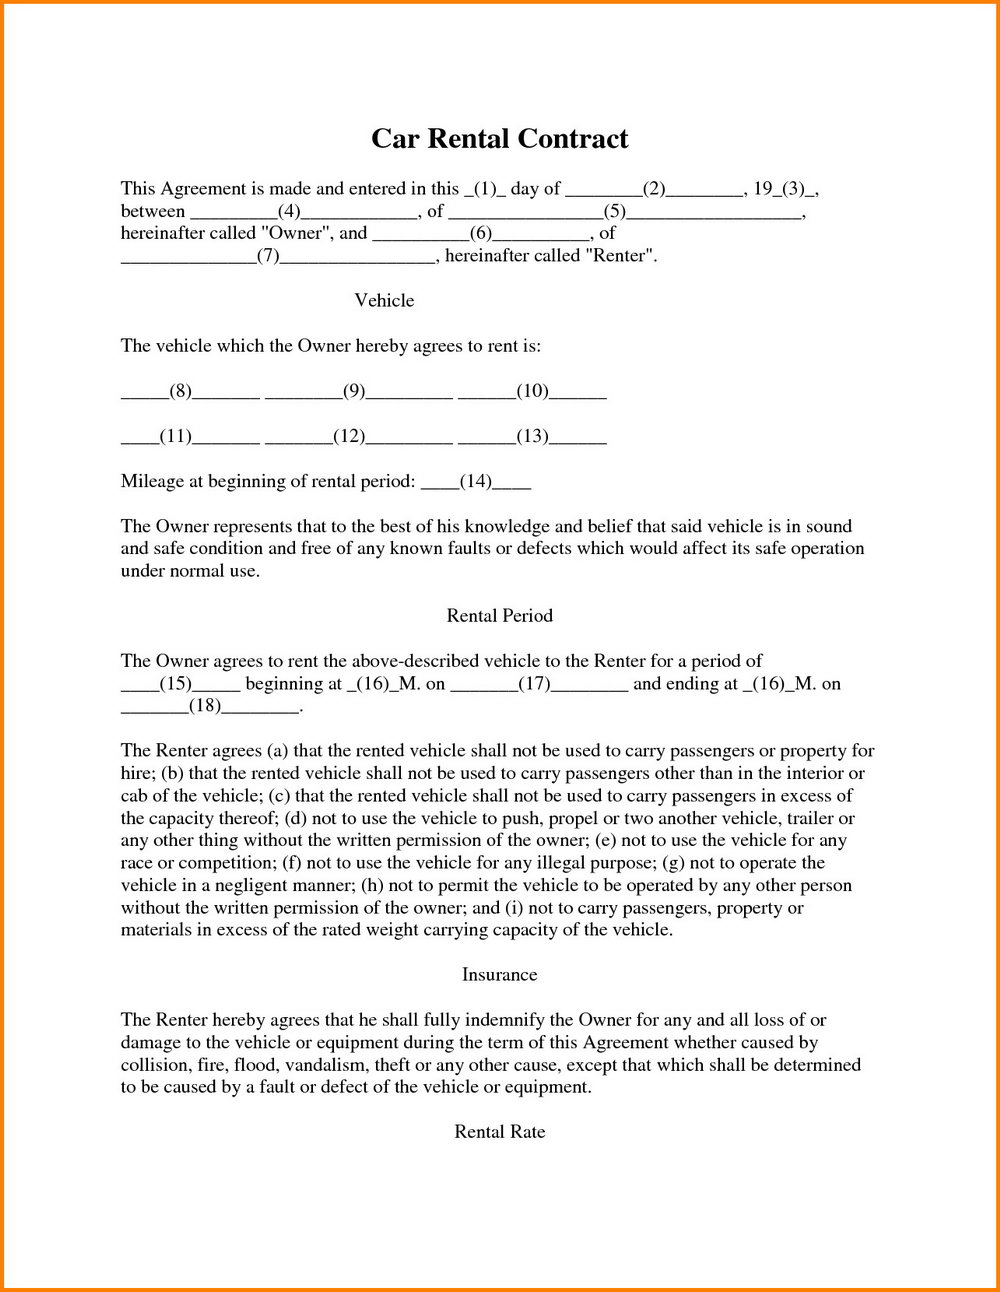 Nys Disability Form Db 300